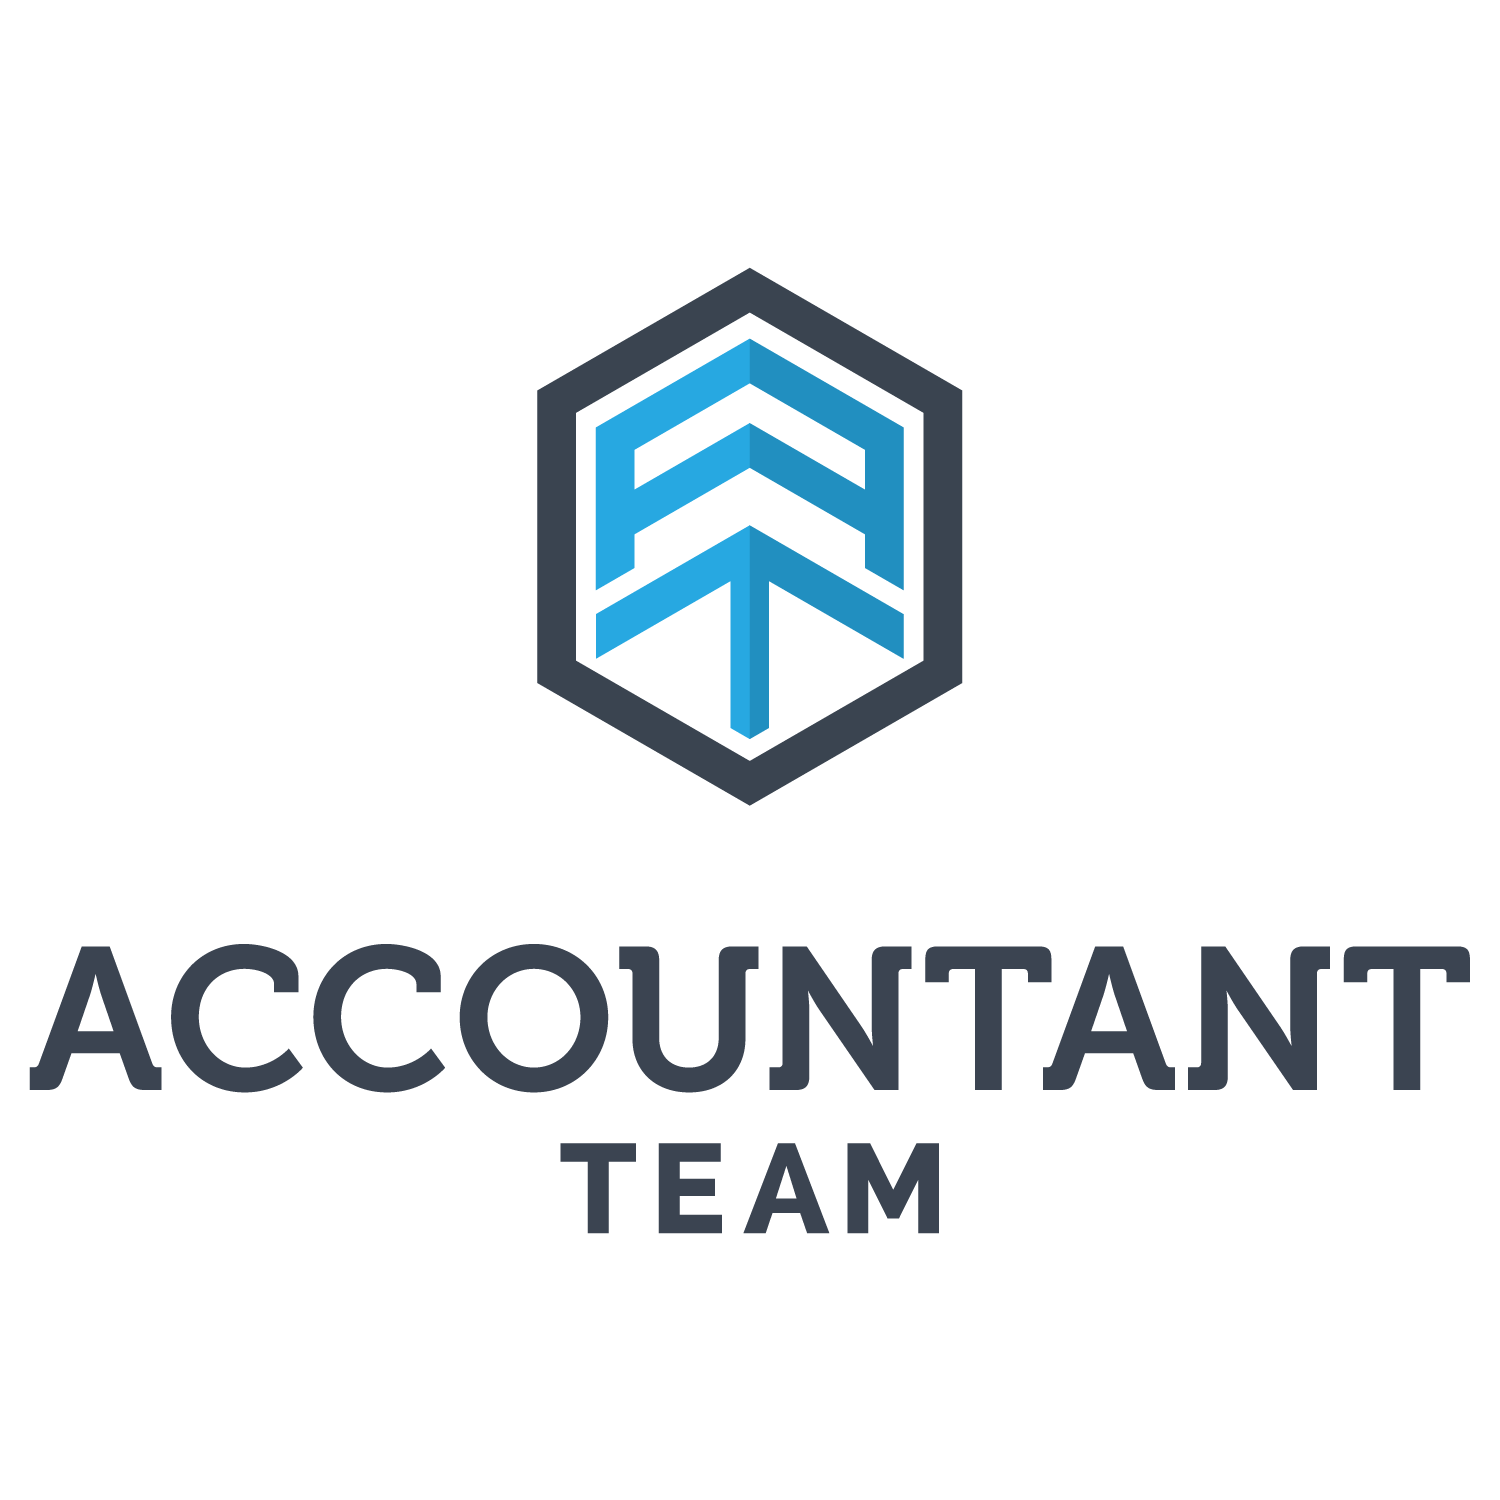 Accountant Team